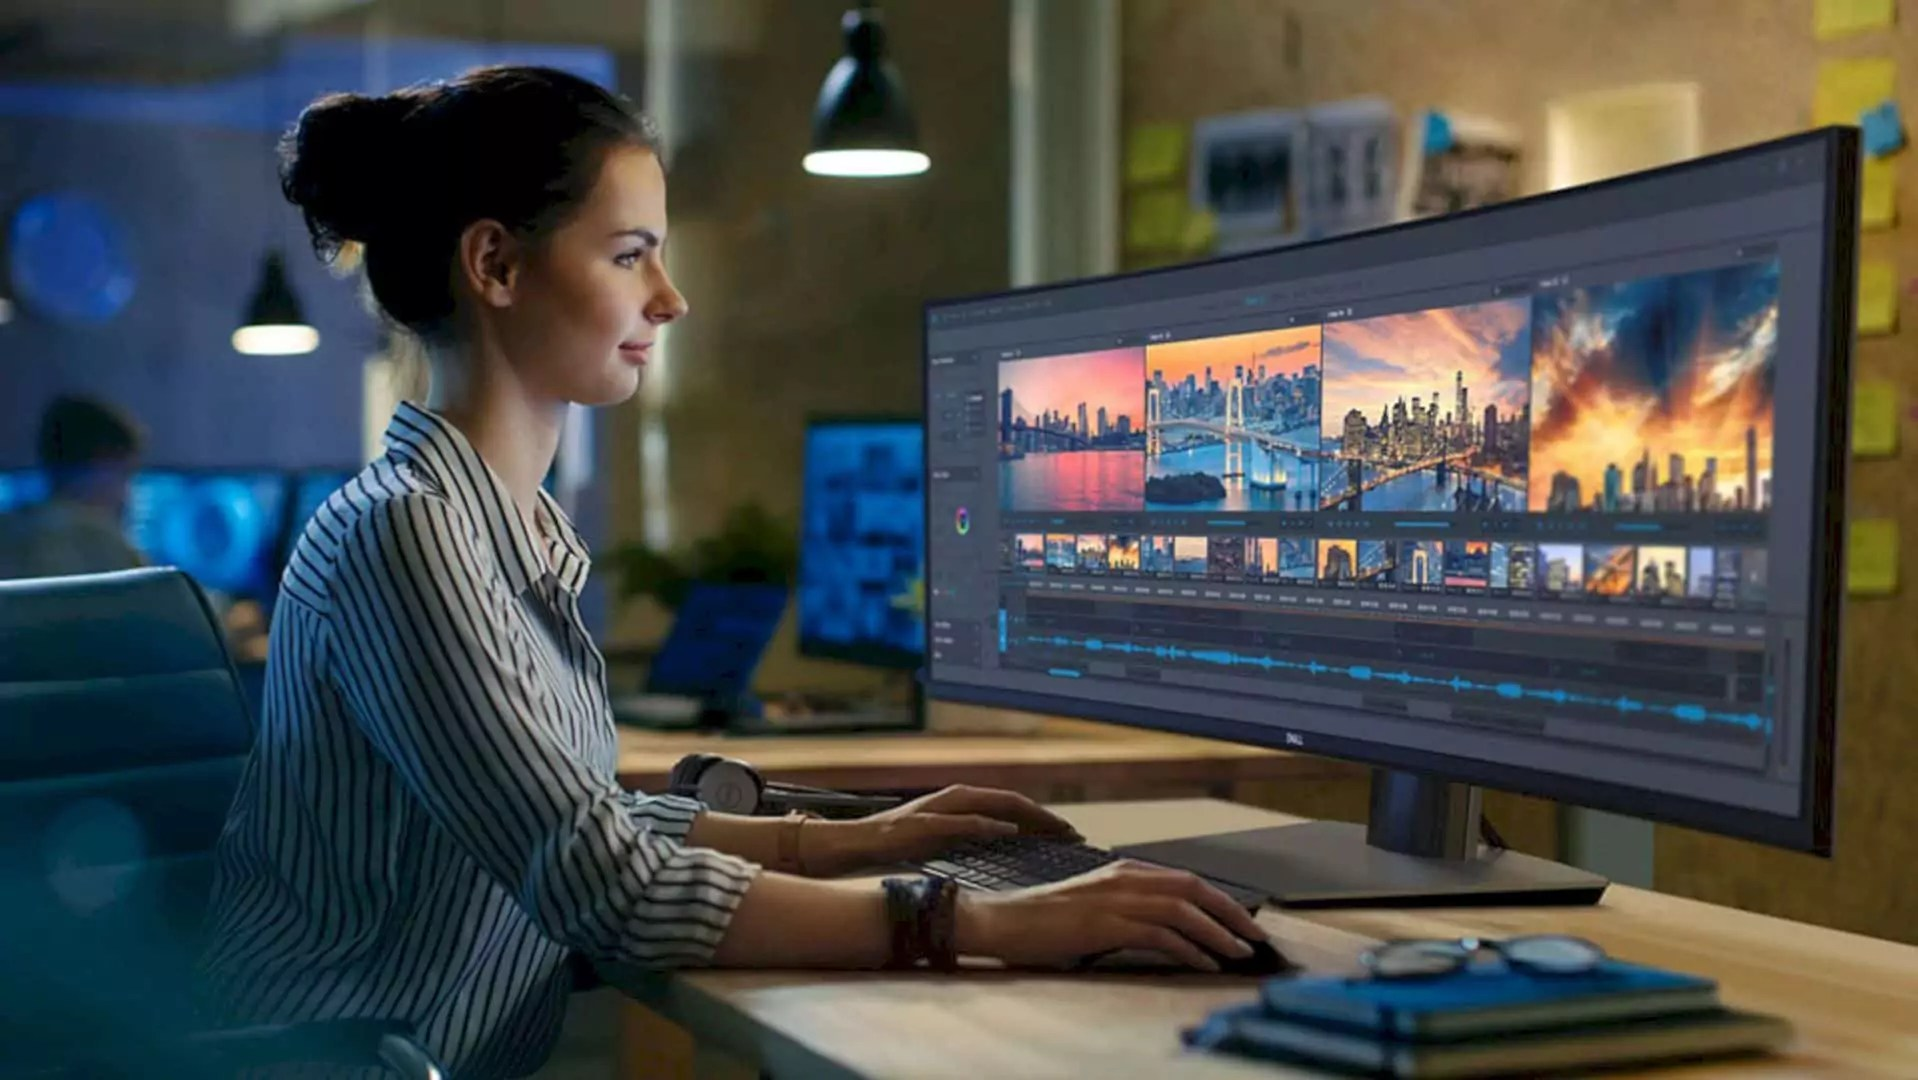 Dell UltraSharp U4919DW: A revolutionary 49-inch dual QHD curved monitor with ultra wide views